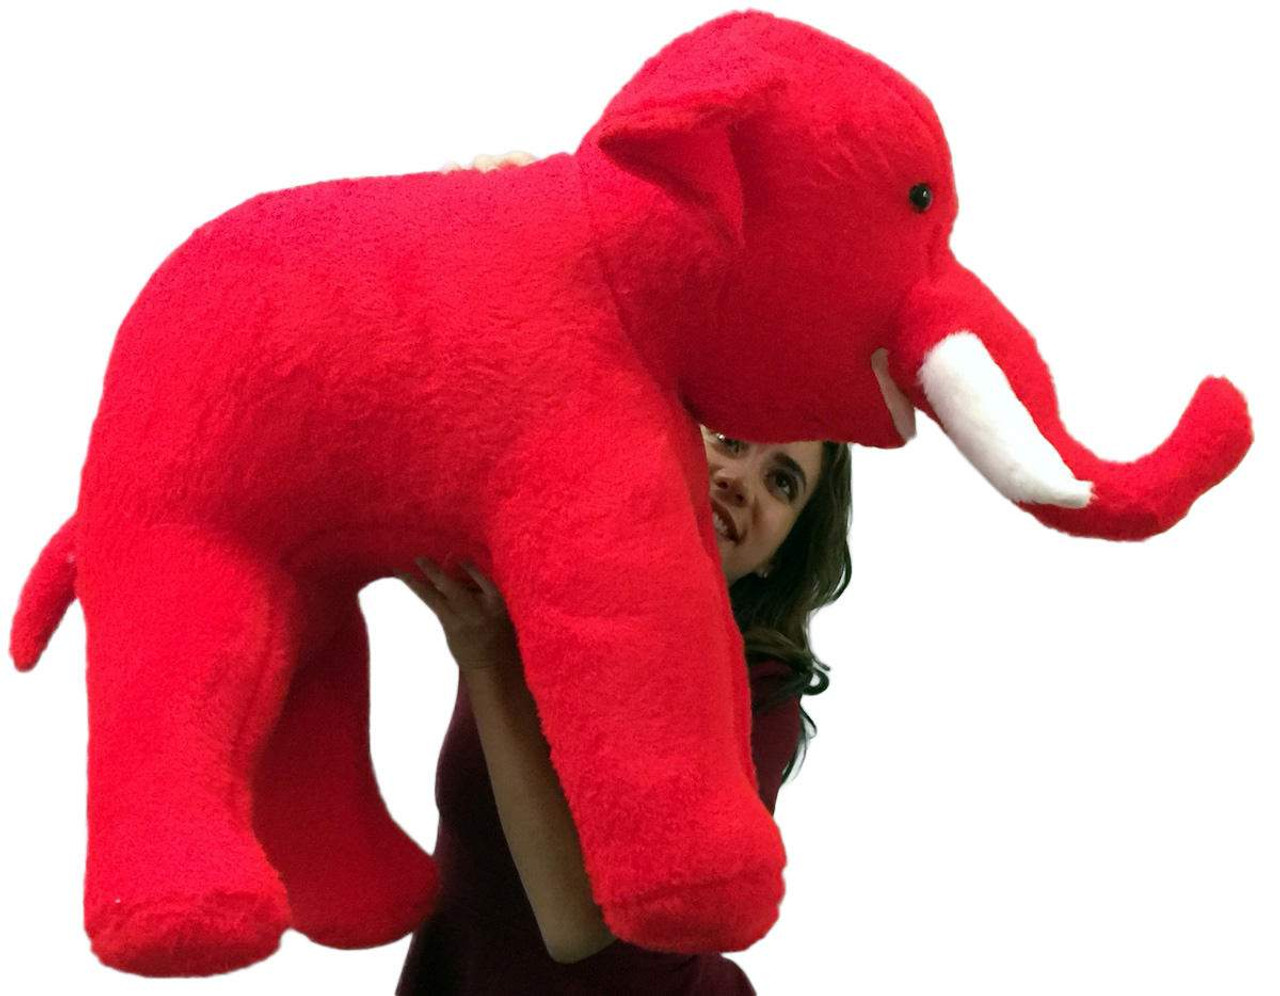 American Made Large Stuffed Red Elephant 36 Inch Big Plush Animal